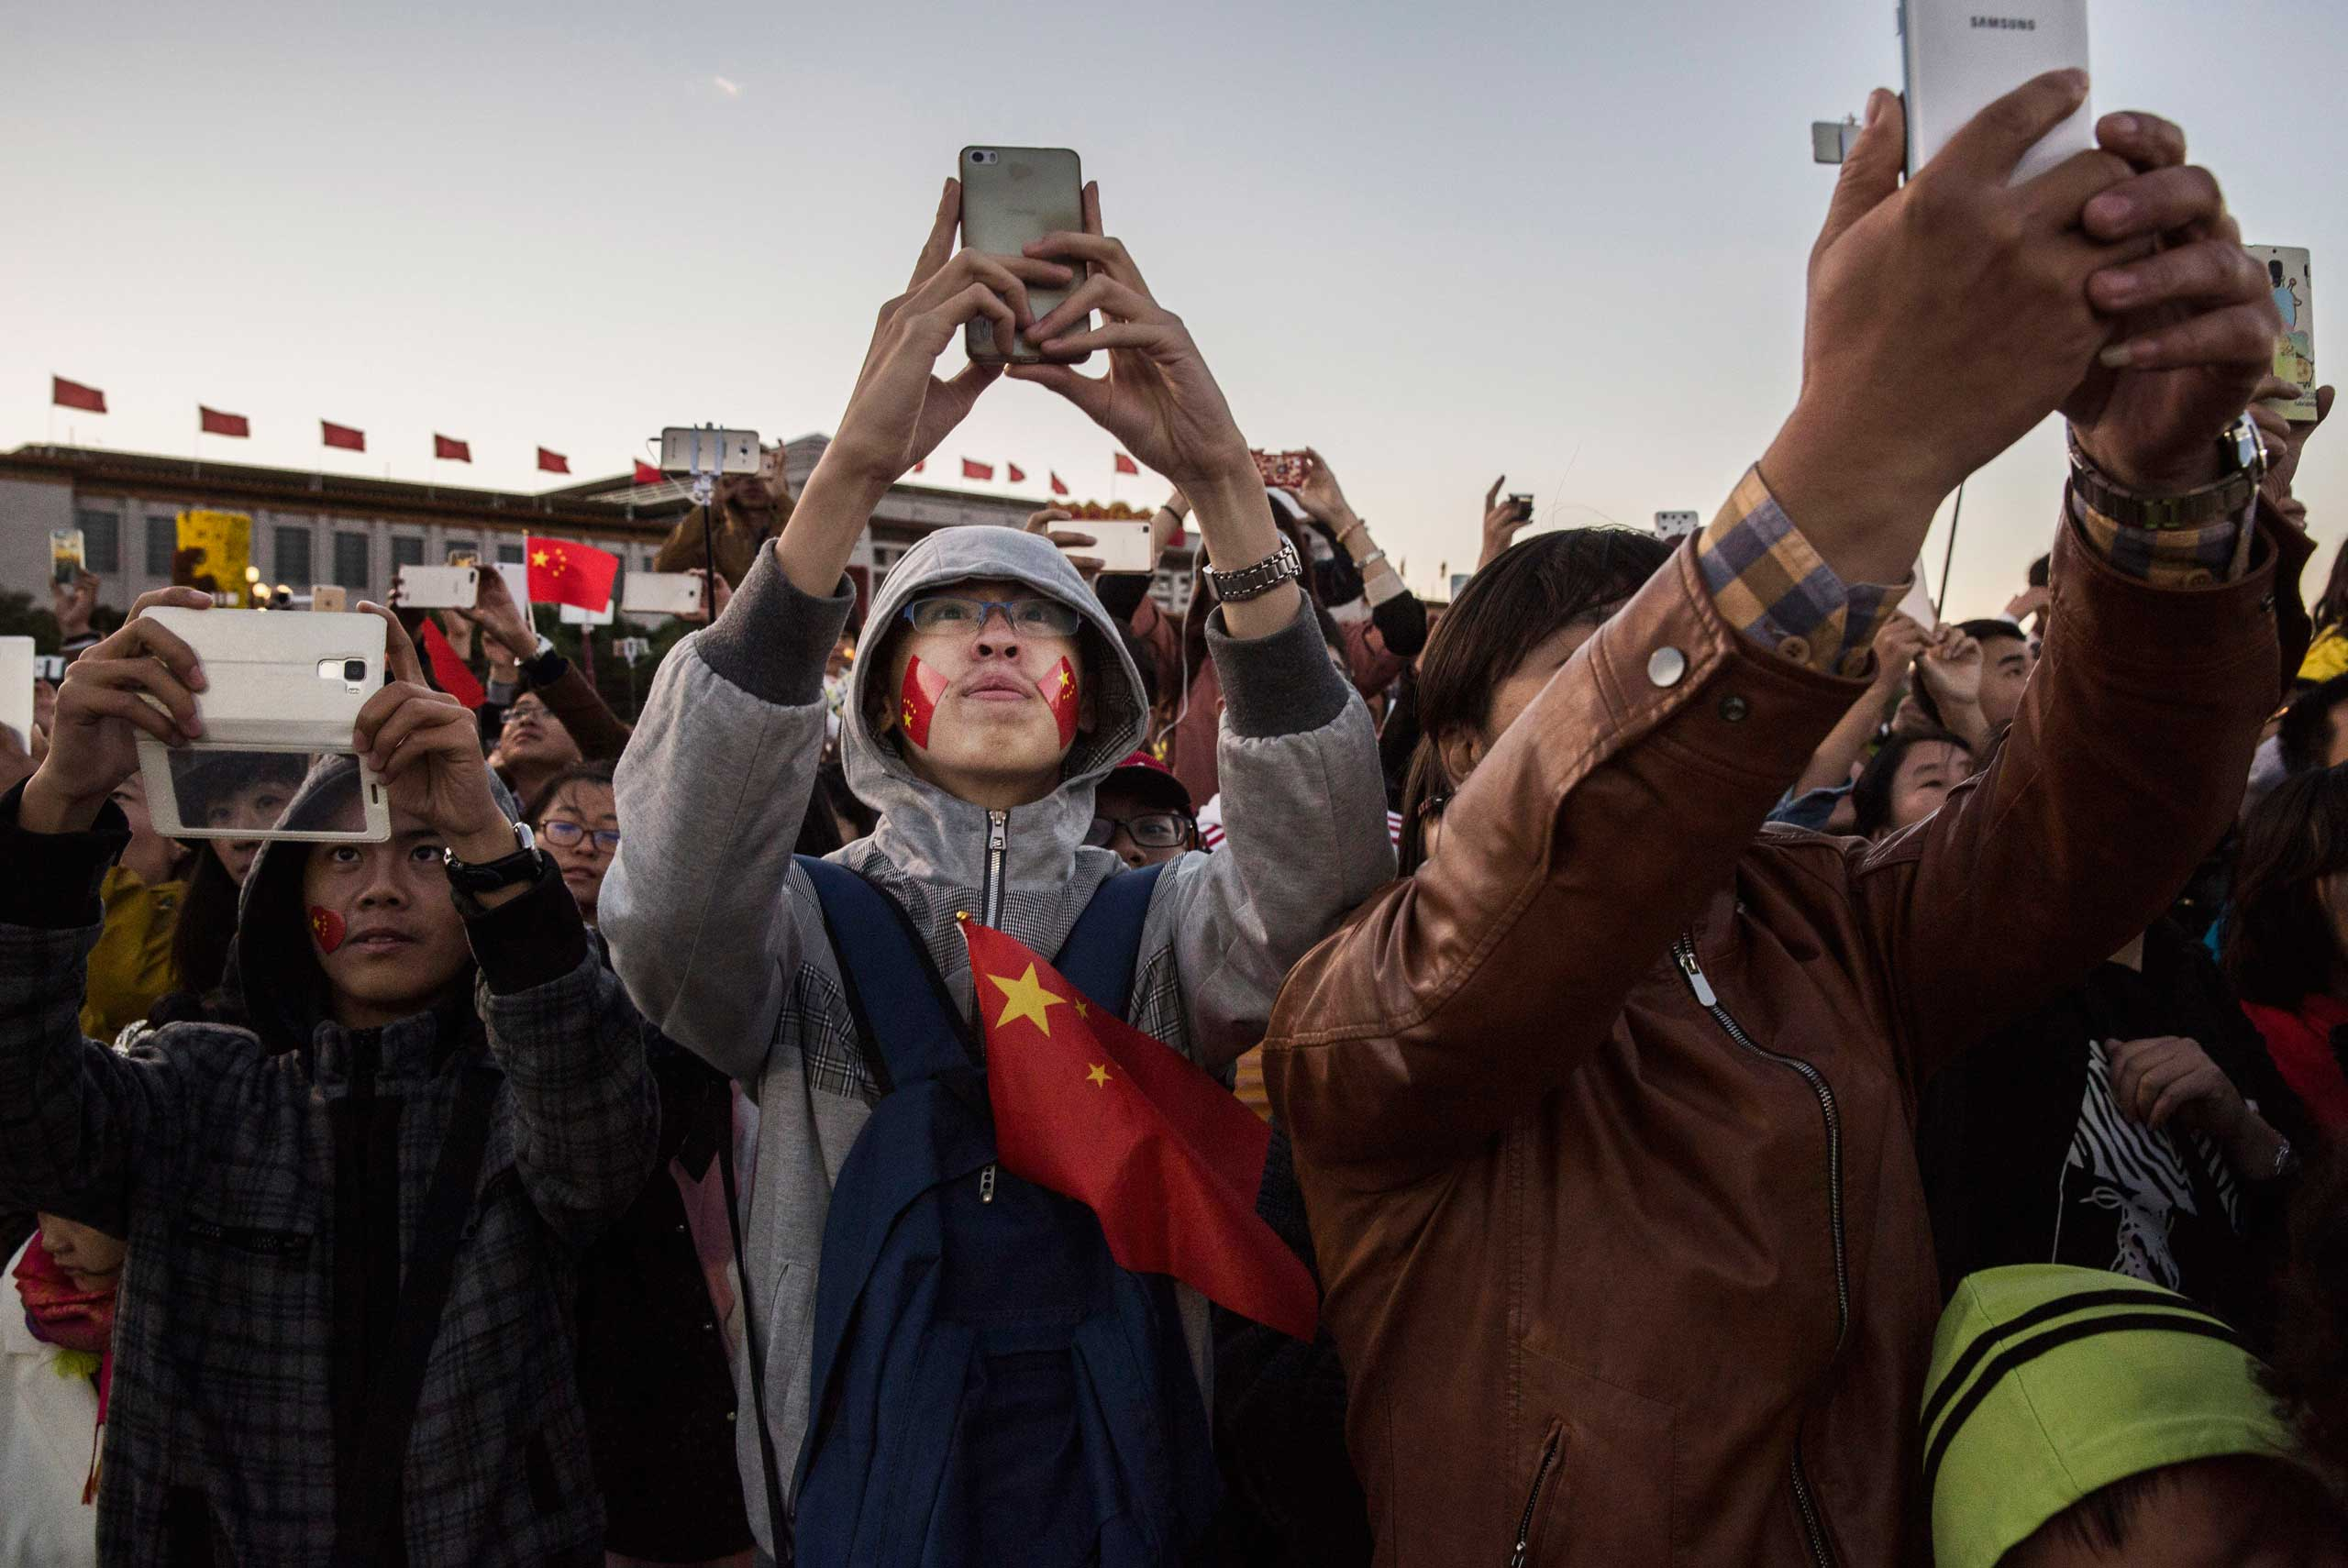 People take pictures as they gather during the official flag raising ceremony at Tiananmen Square to mark the 66th National Day in Beijing, on Oct. 1, 2015.